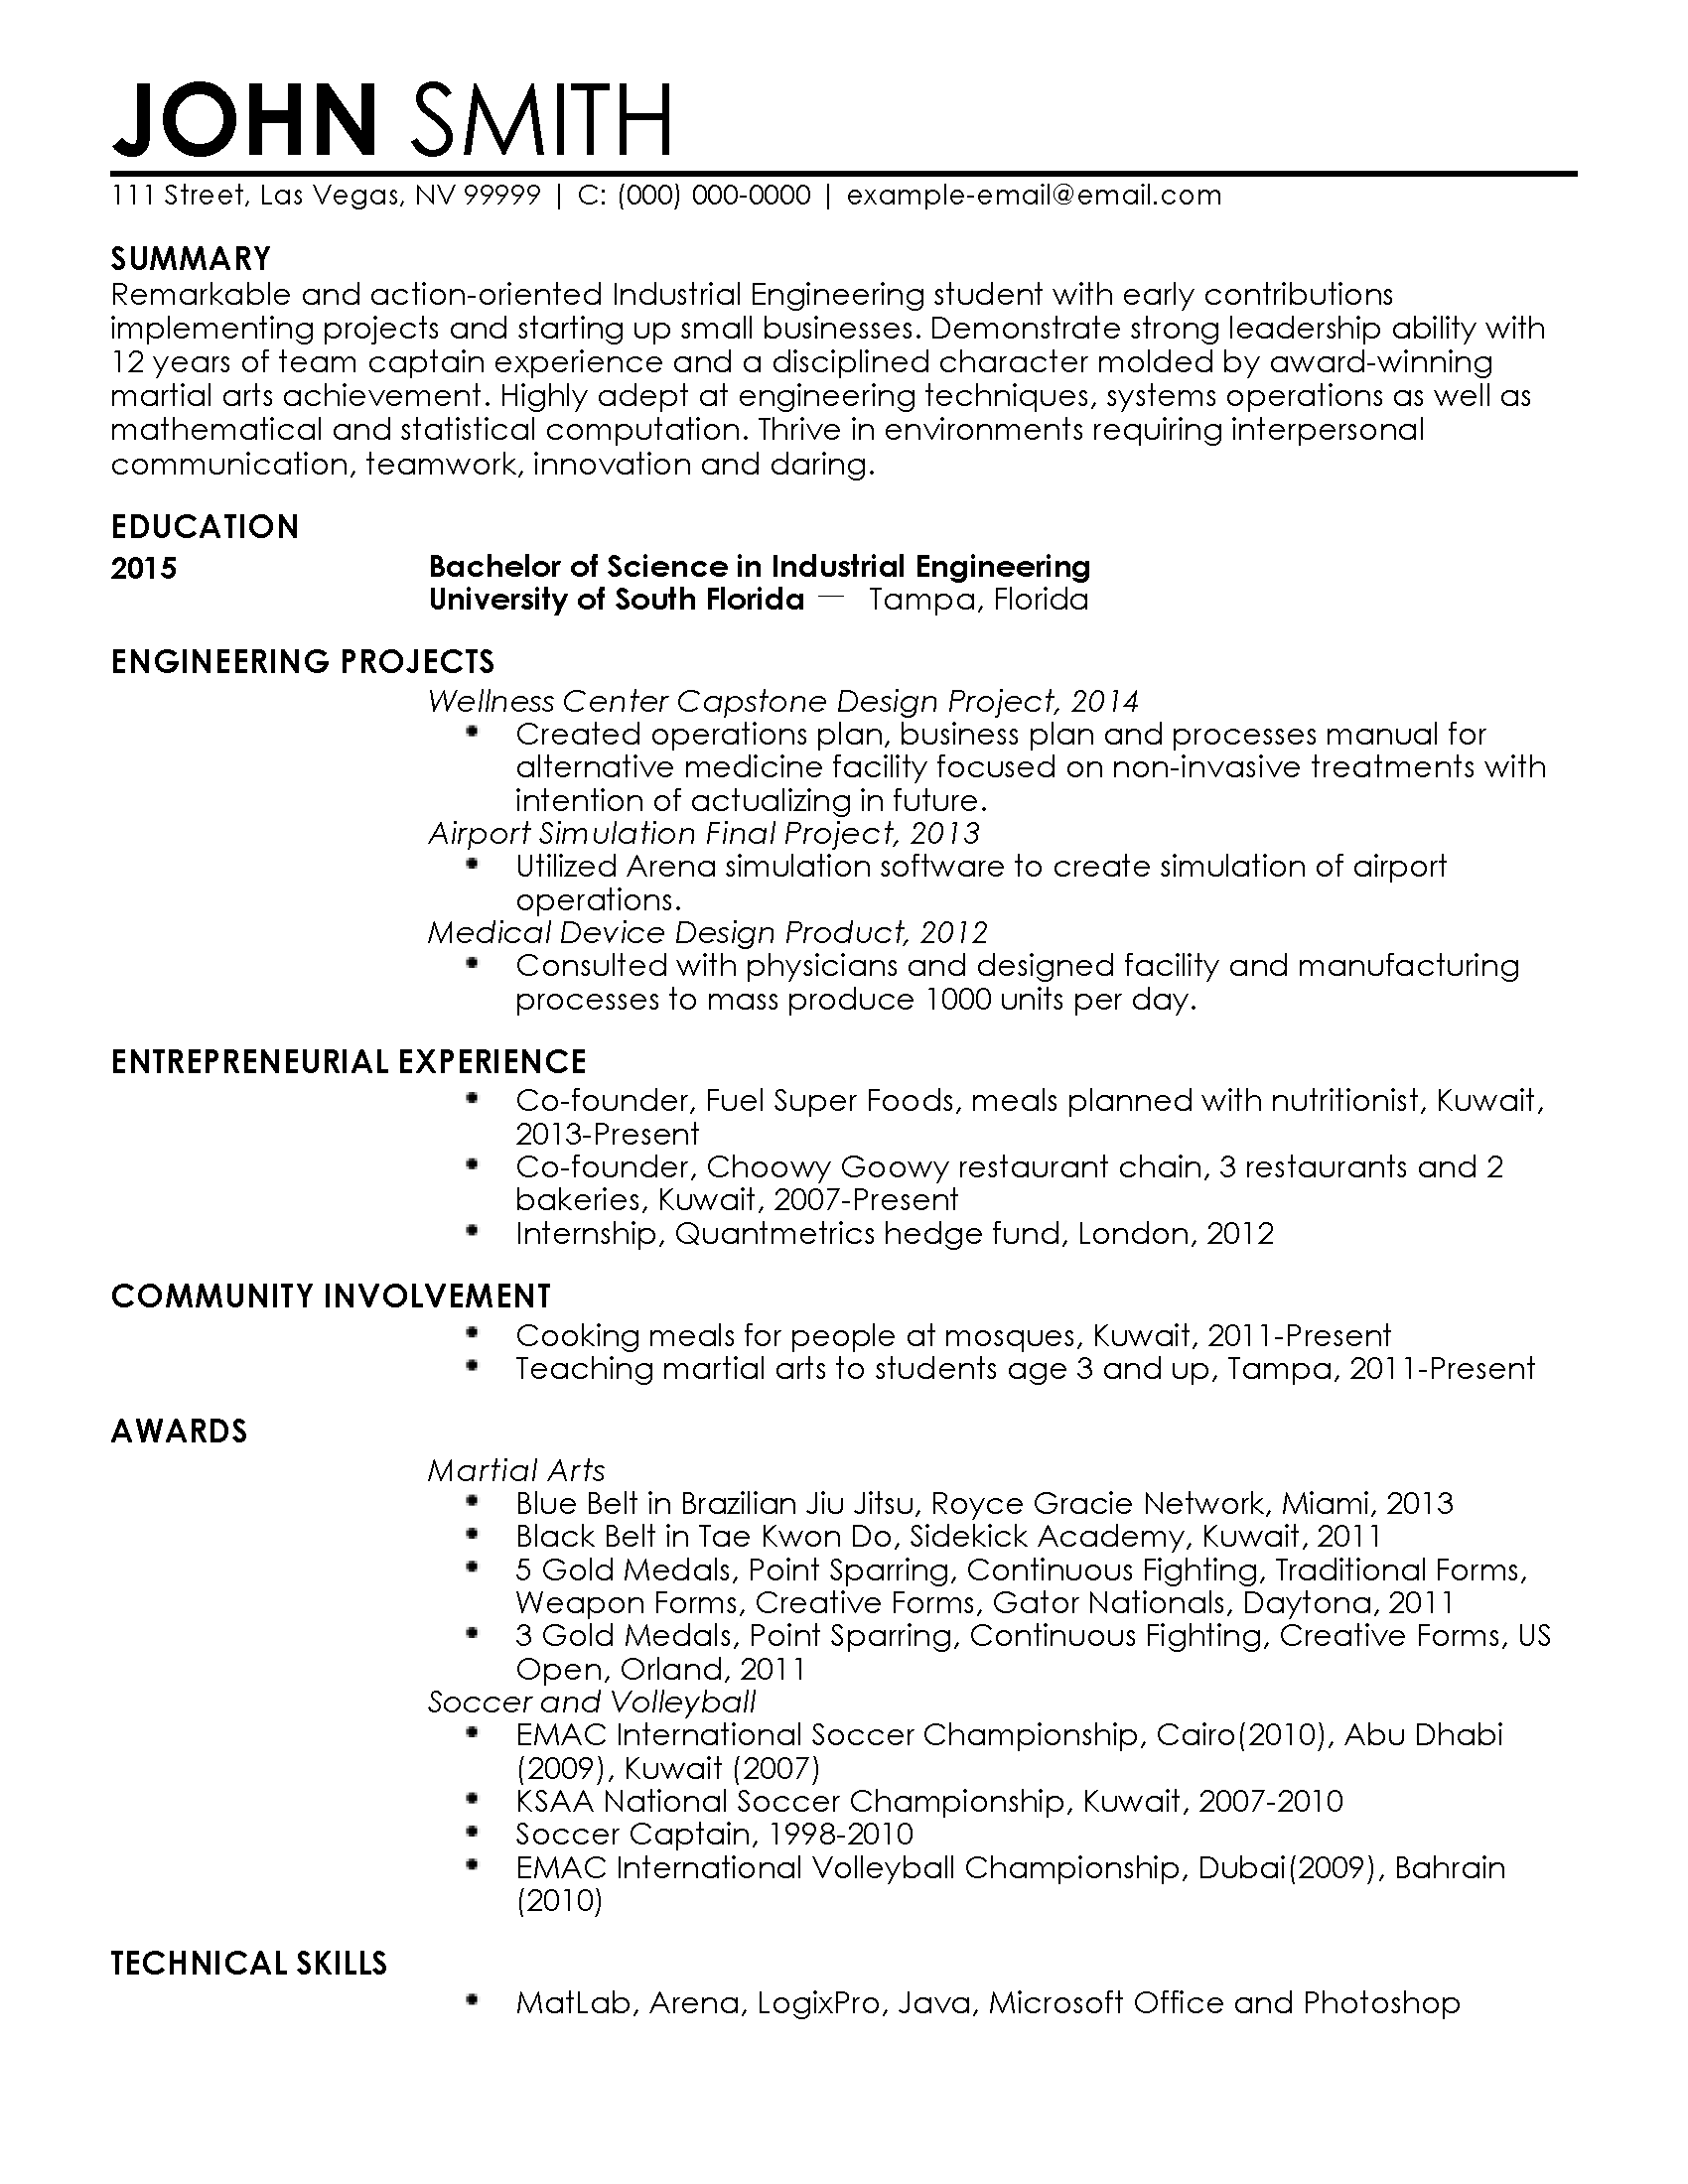 How To Make The Perfect Resume Entry Resume For Hamad Alnabhan My Perfect Resume